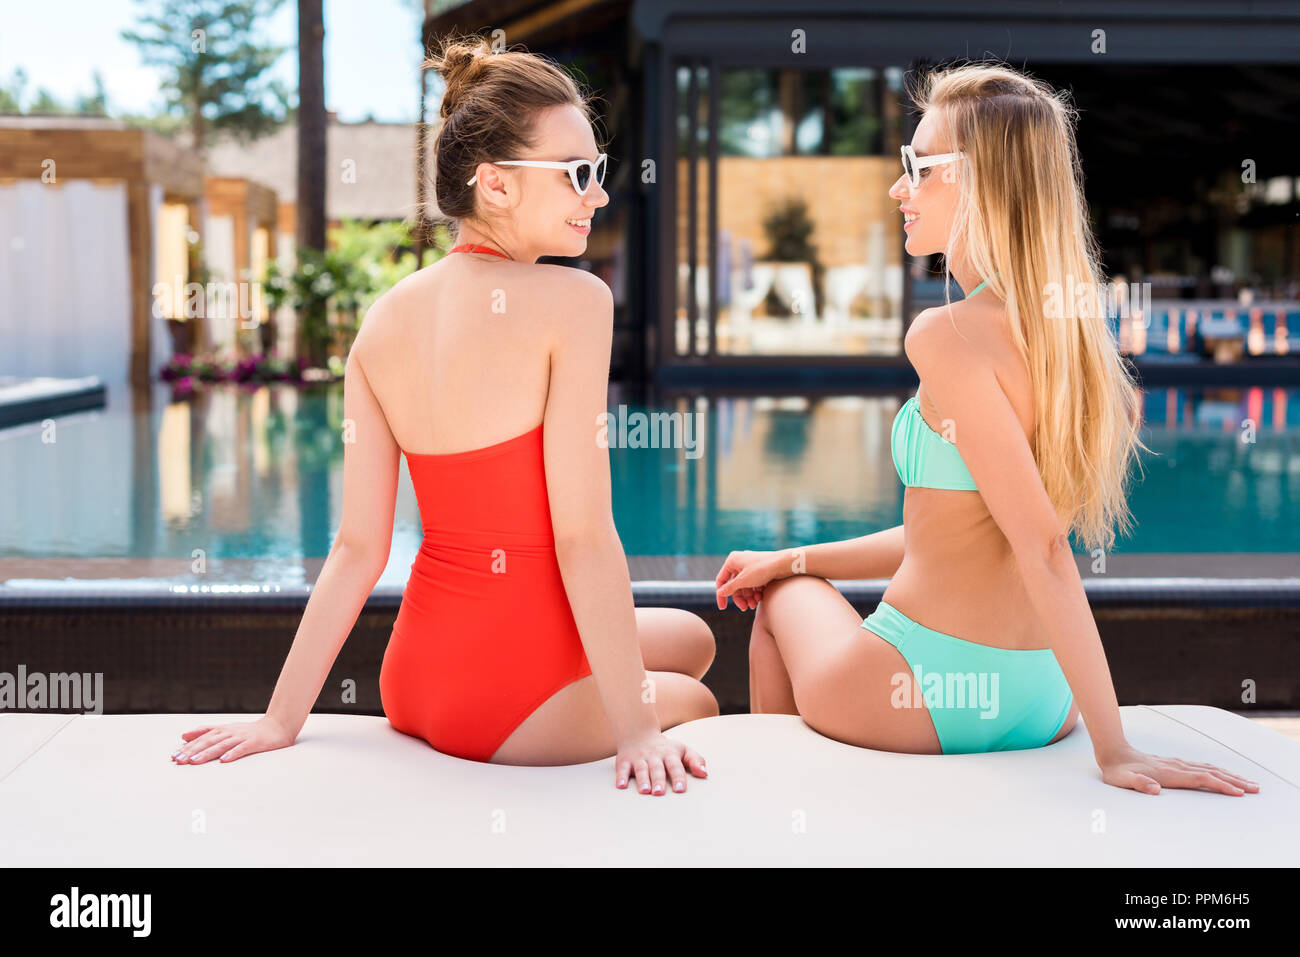 rear view of attractive young women relaxing on sun lounger at poolside and looking at each other - Stock Image